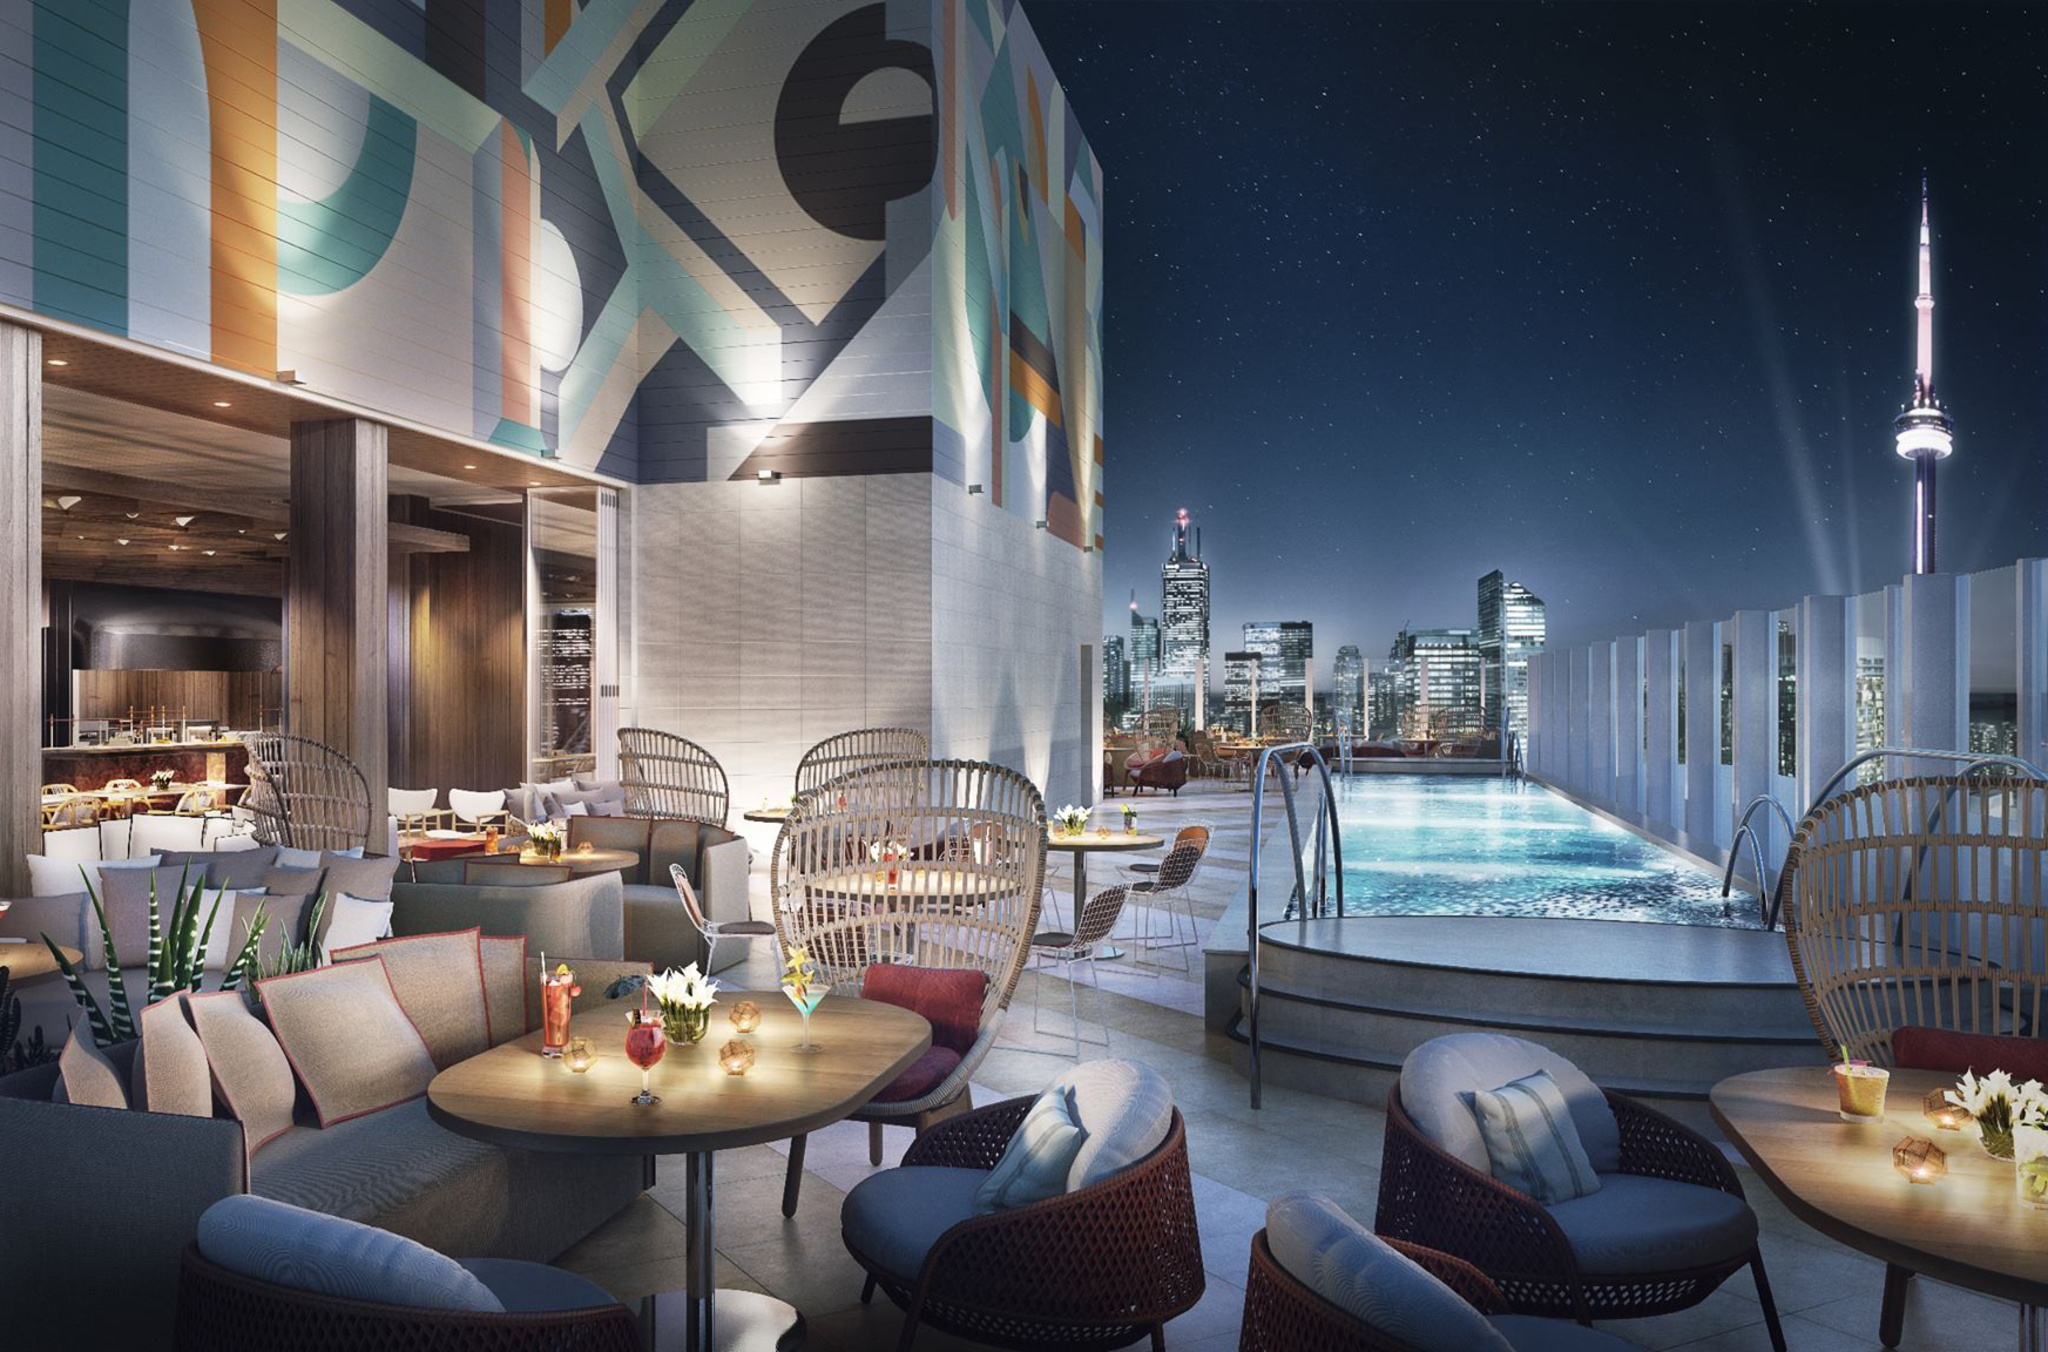 Toronto Hotel With Stunning Rooftop Restaurant And Pool Opening This